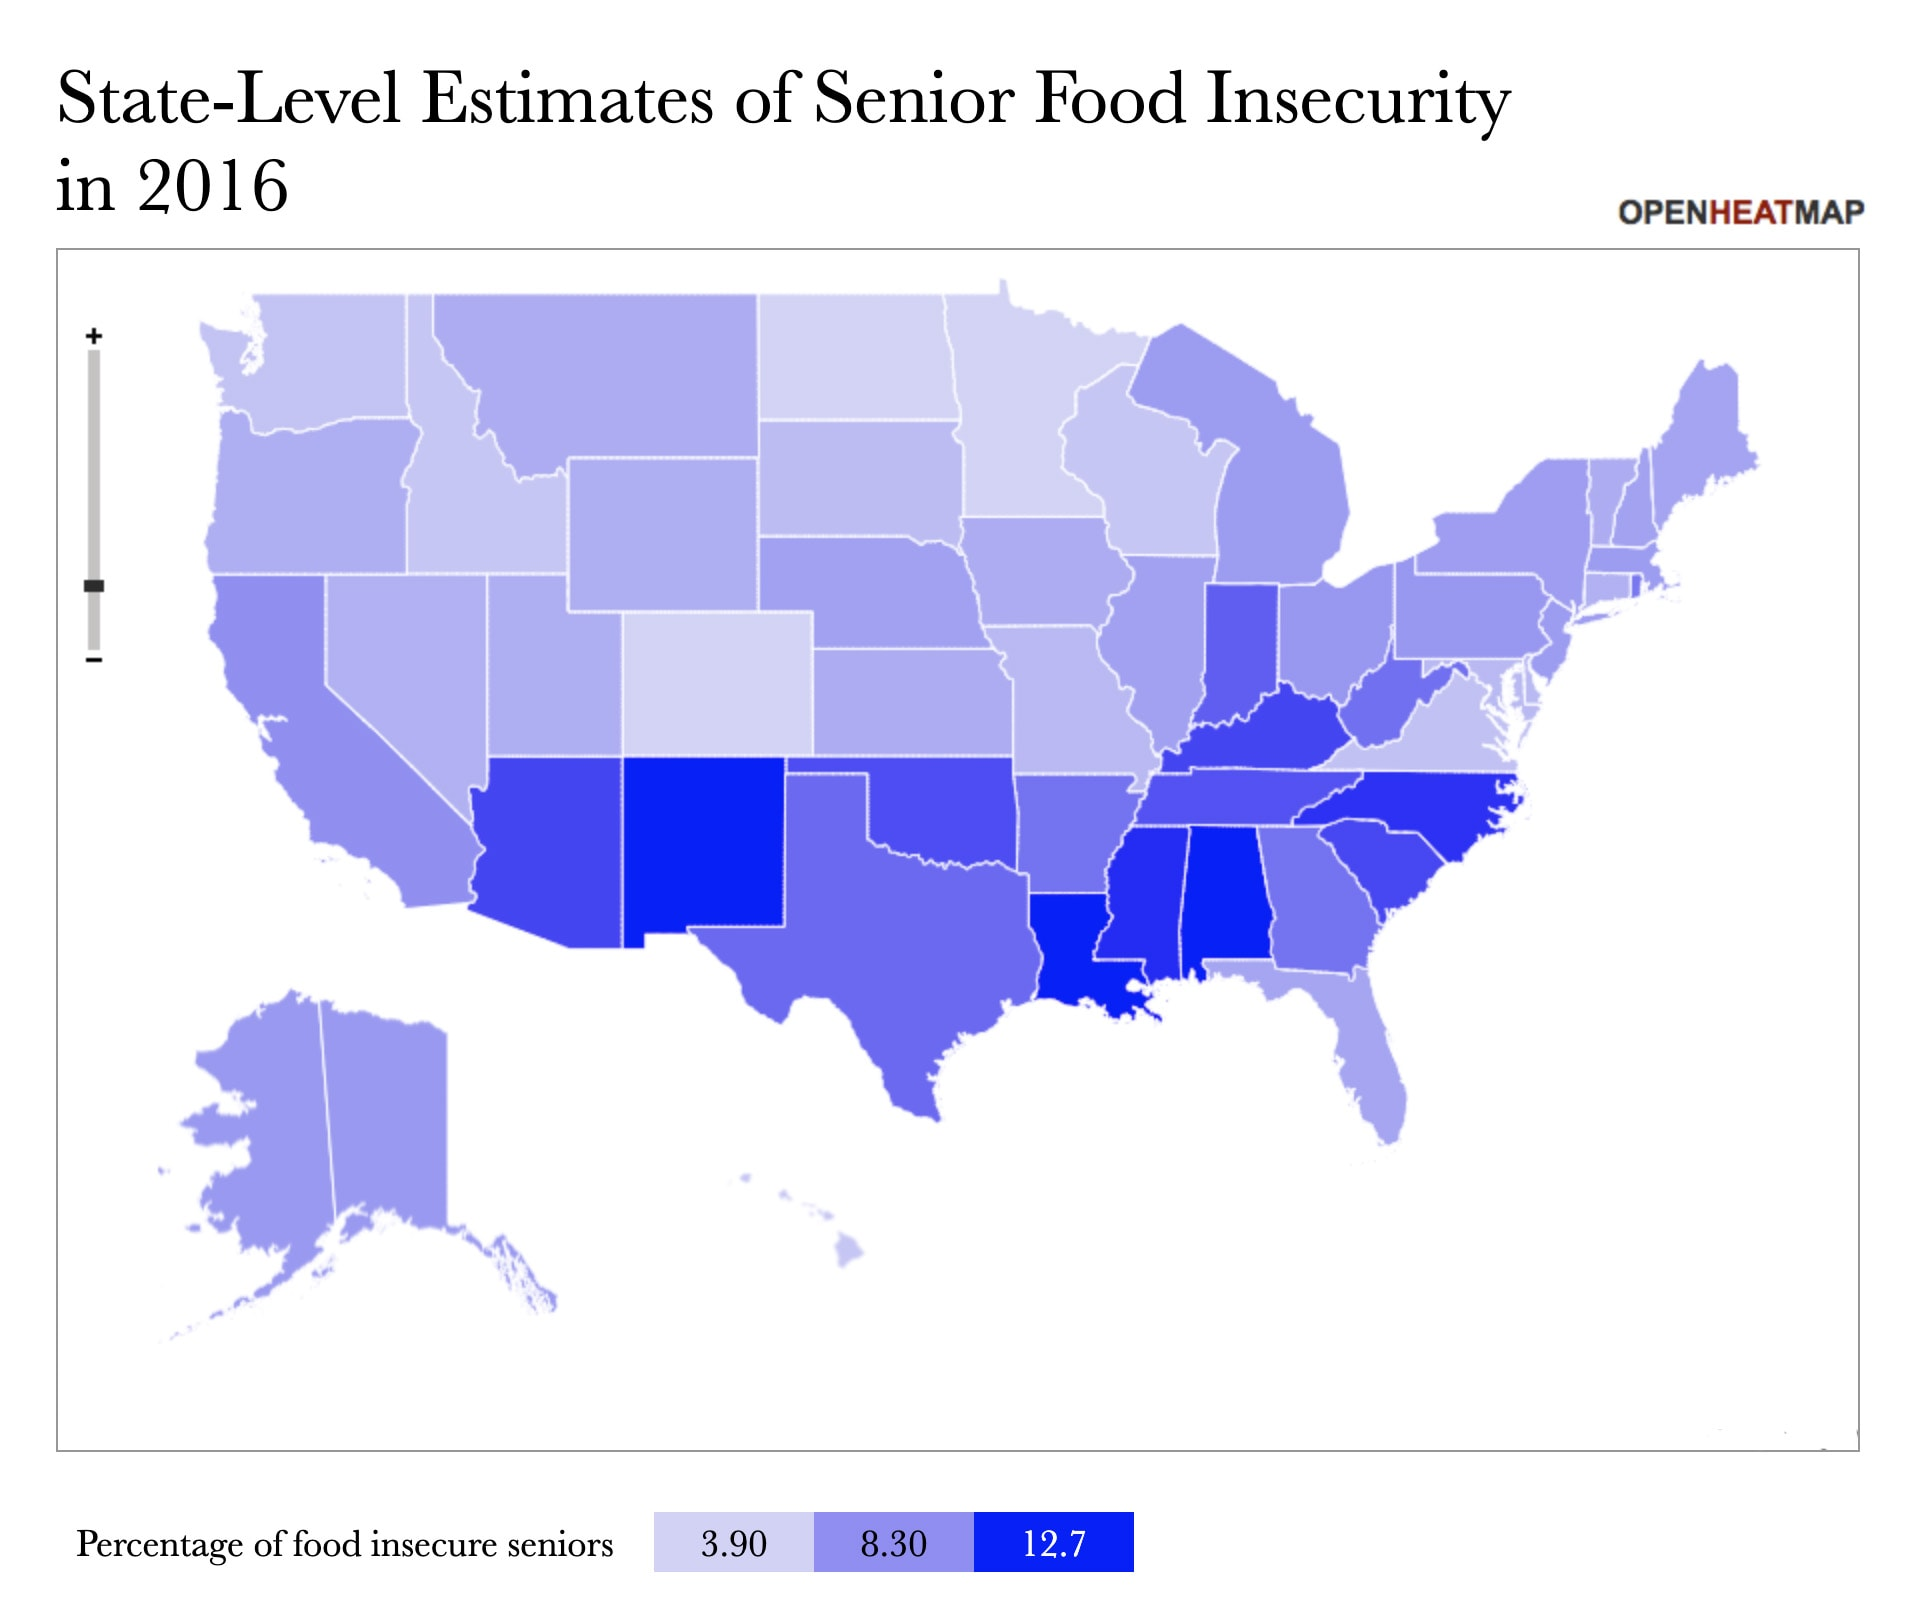 State estimates for Senior Food Insecurity rates in 2016